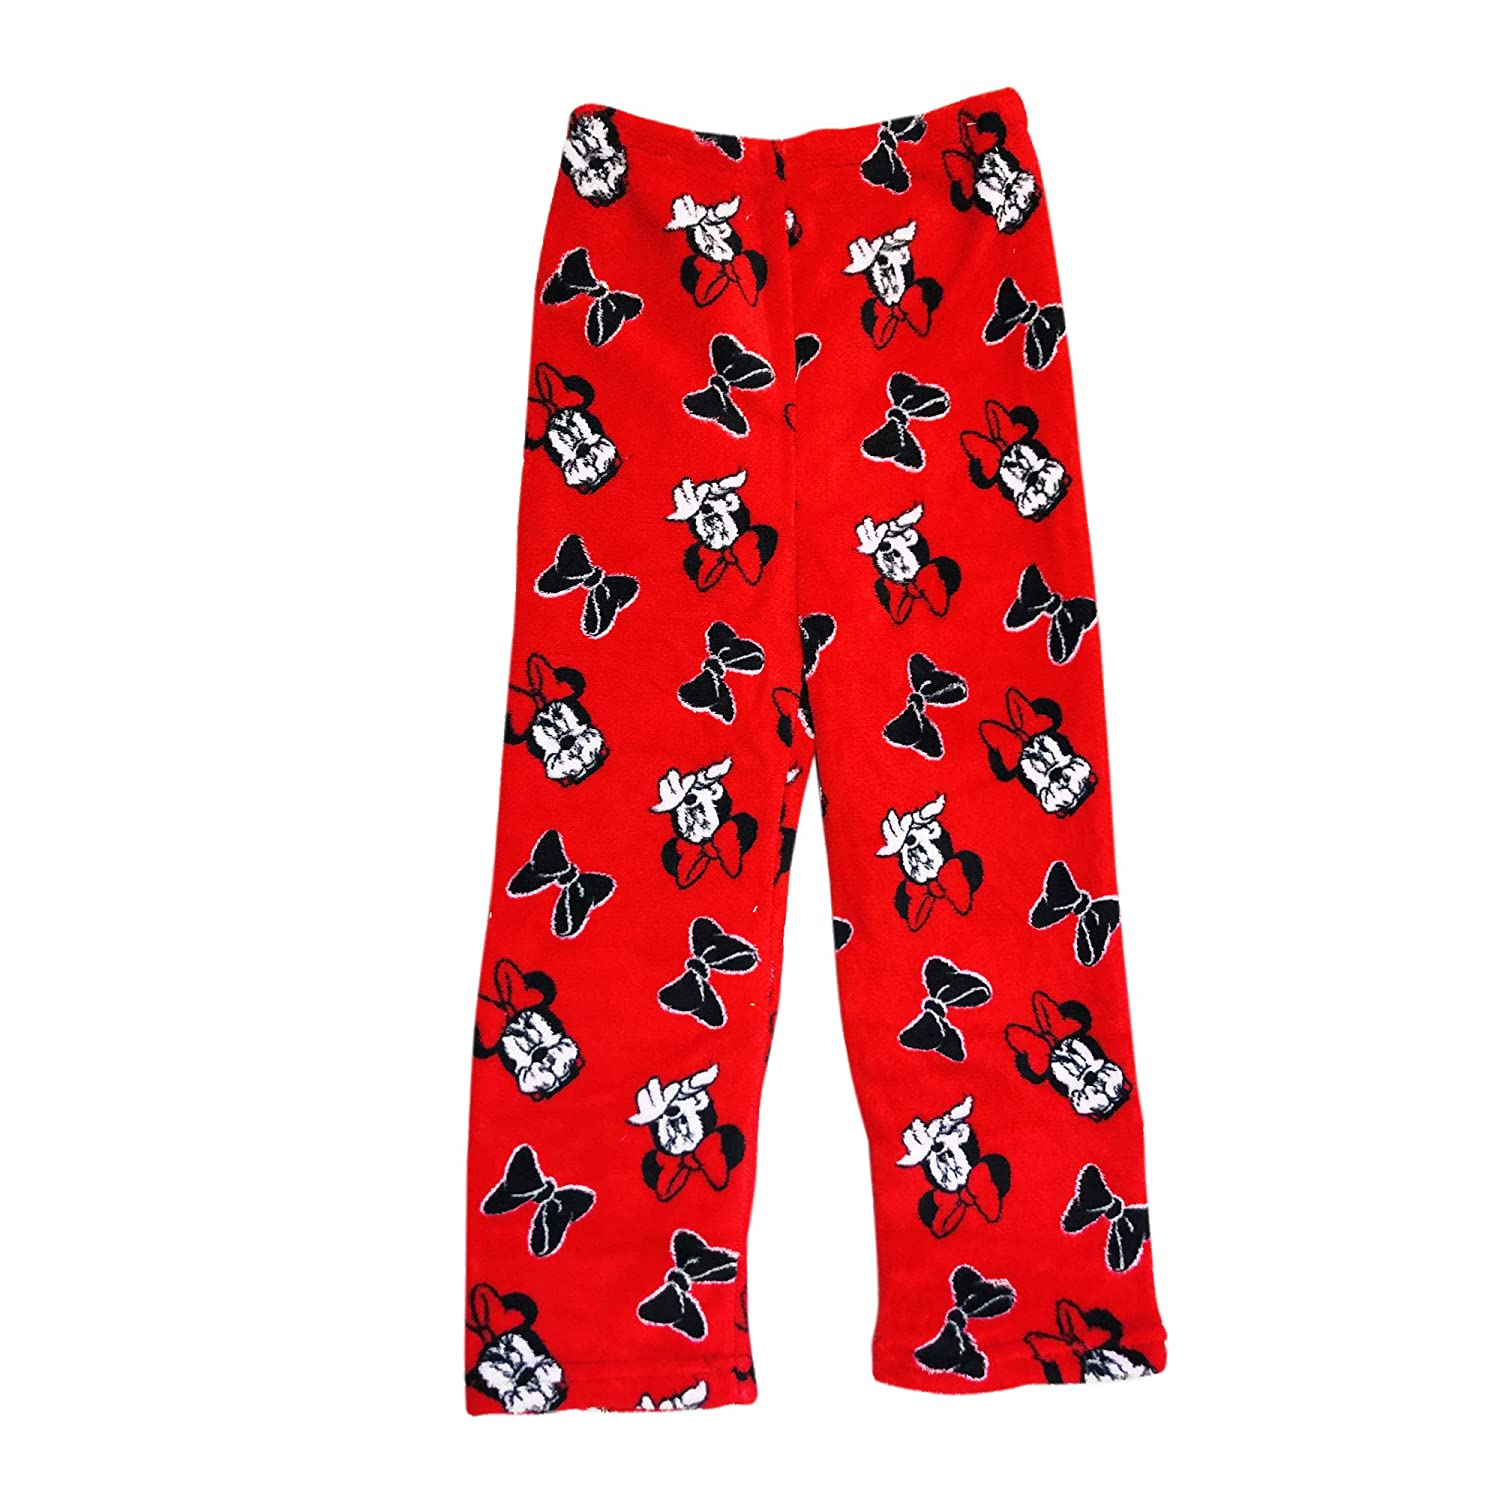 Minnie Mouse Pajama Pants RED with Minnie FACE and Bows Style